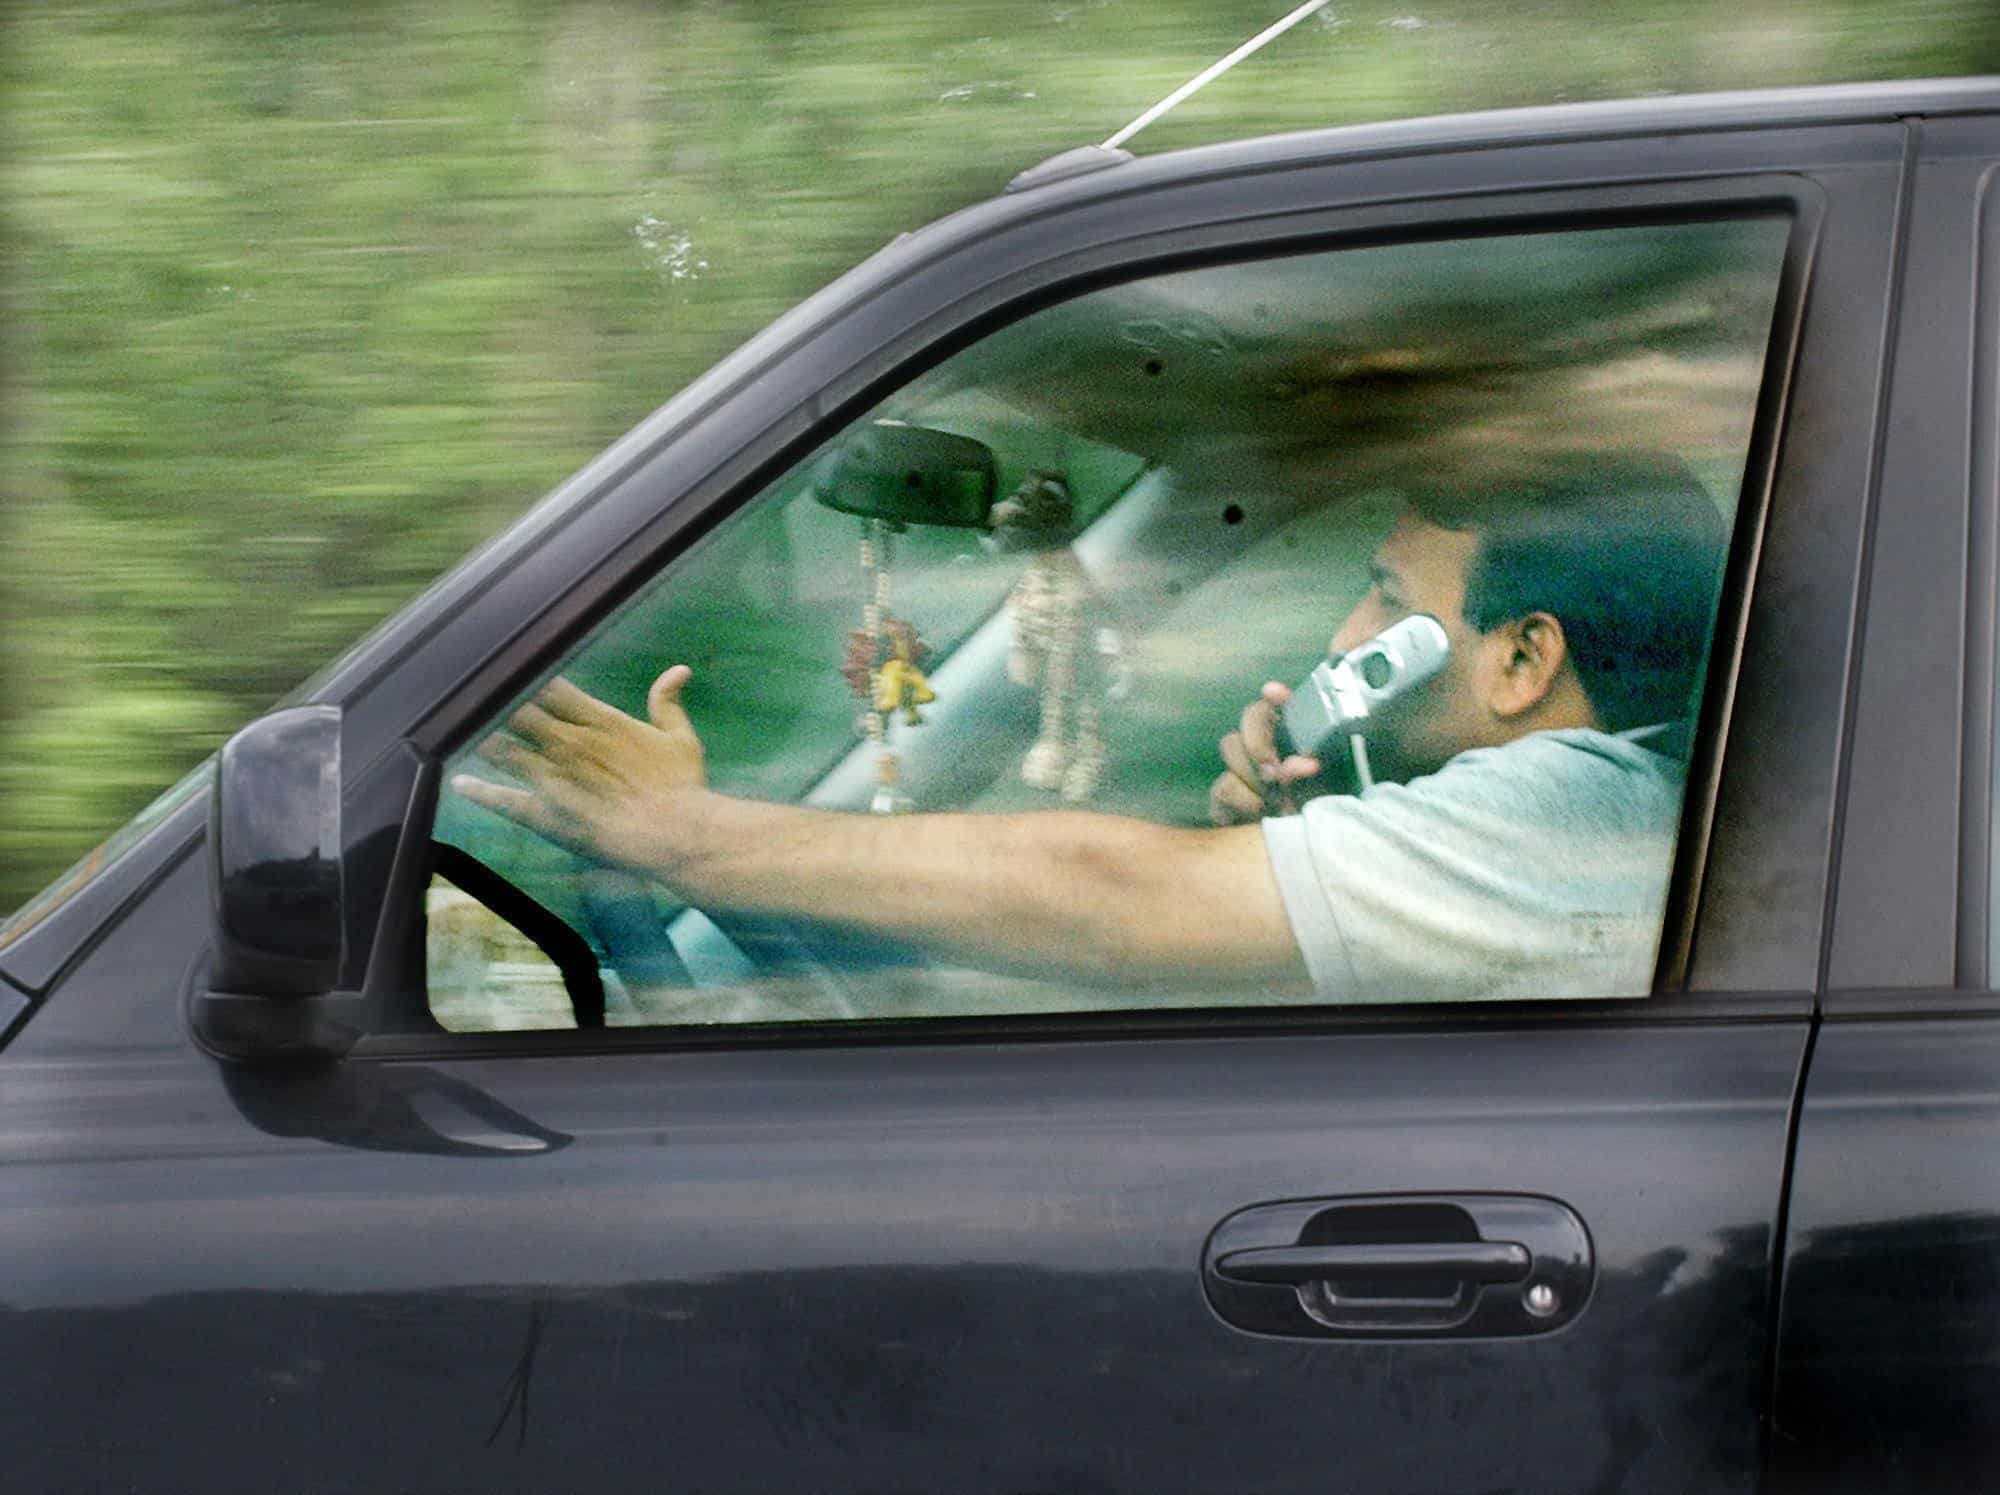 road-rant-cell-phone-2af745e9f0d0b2e1